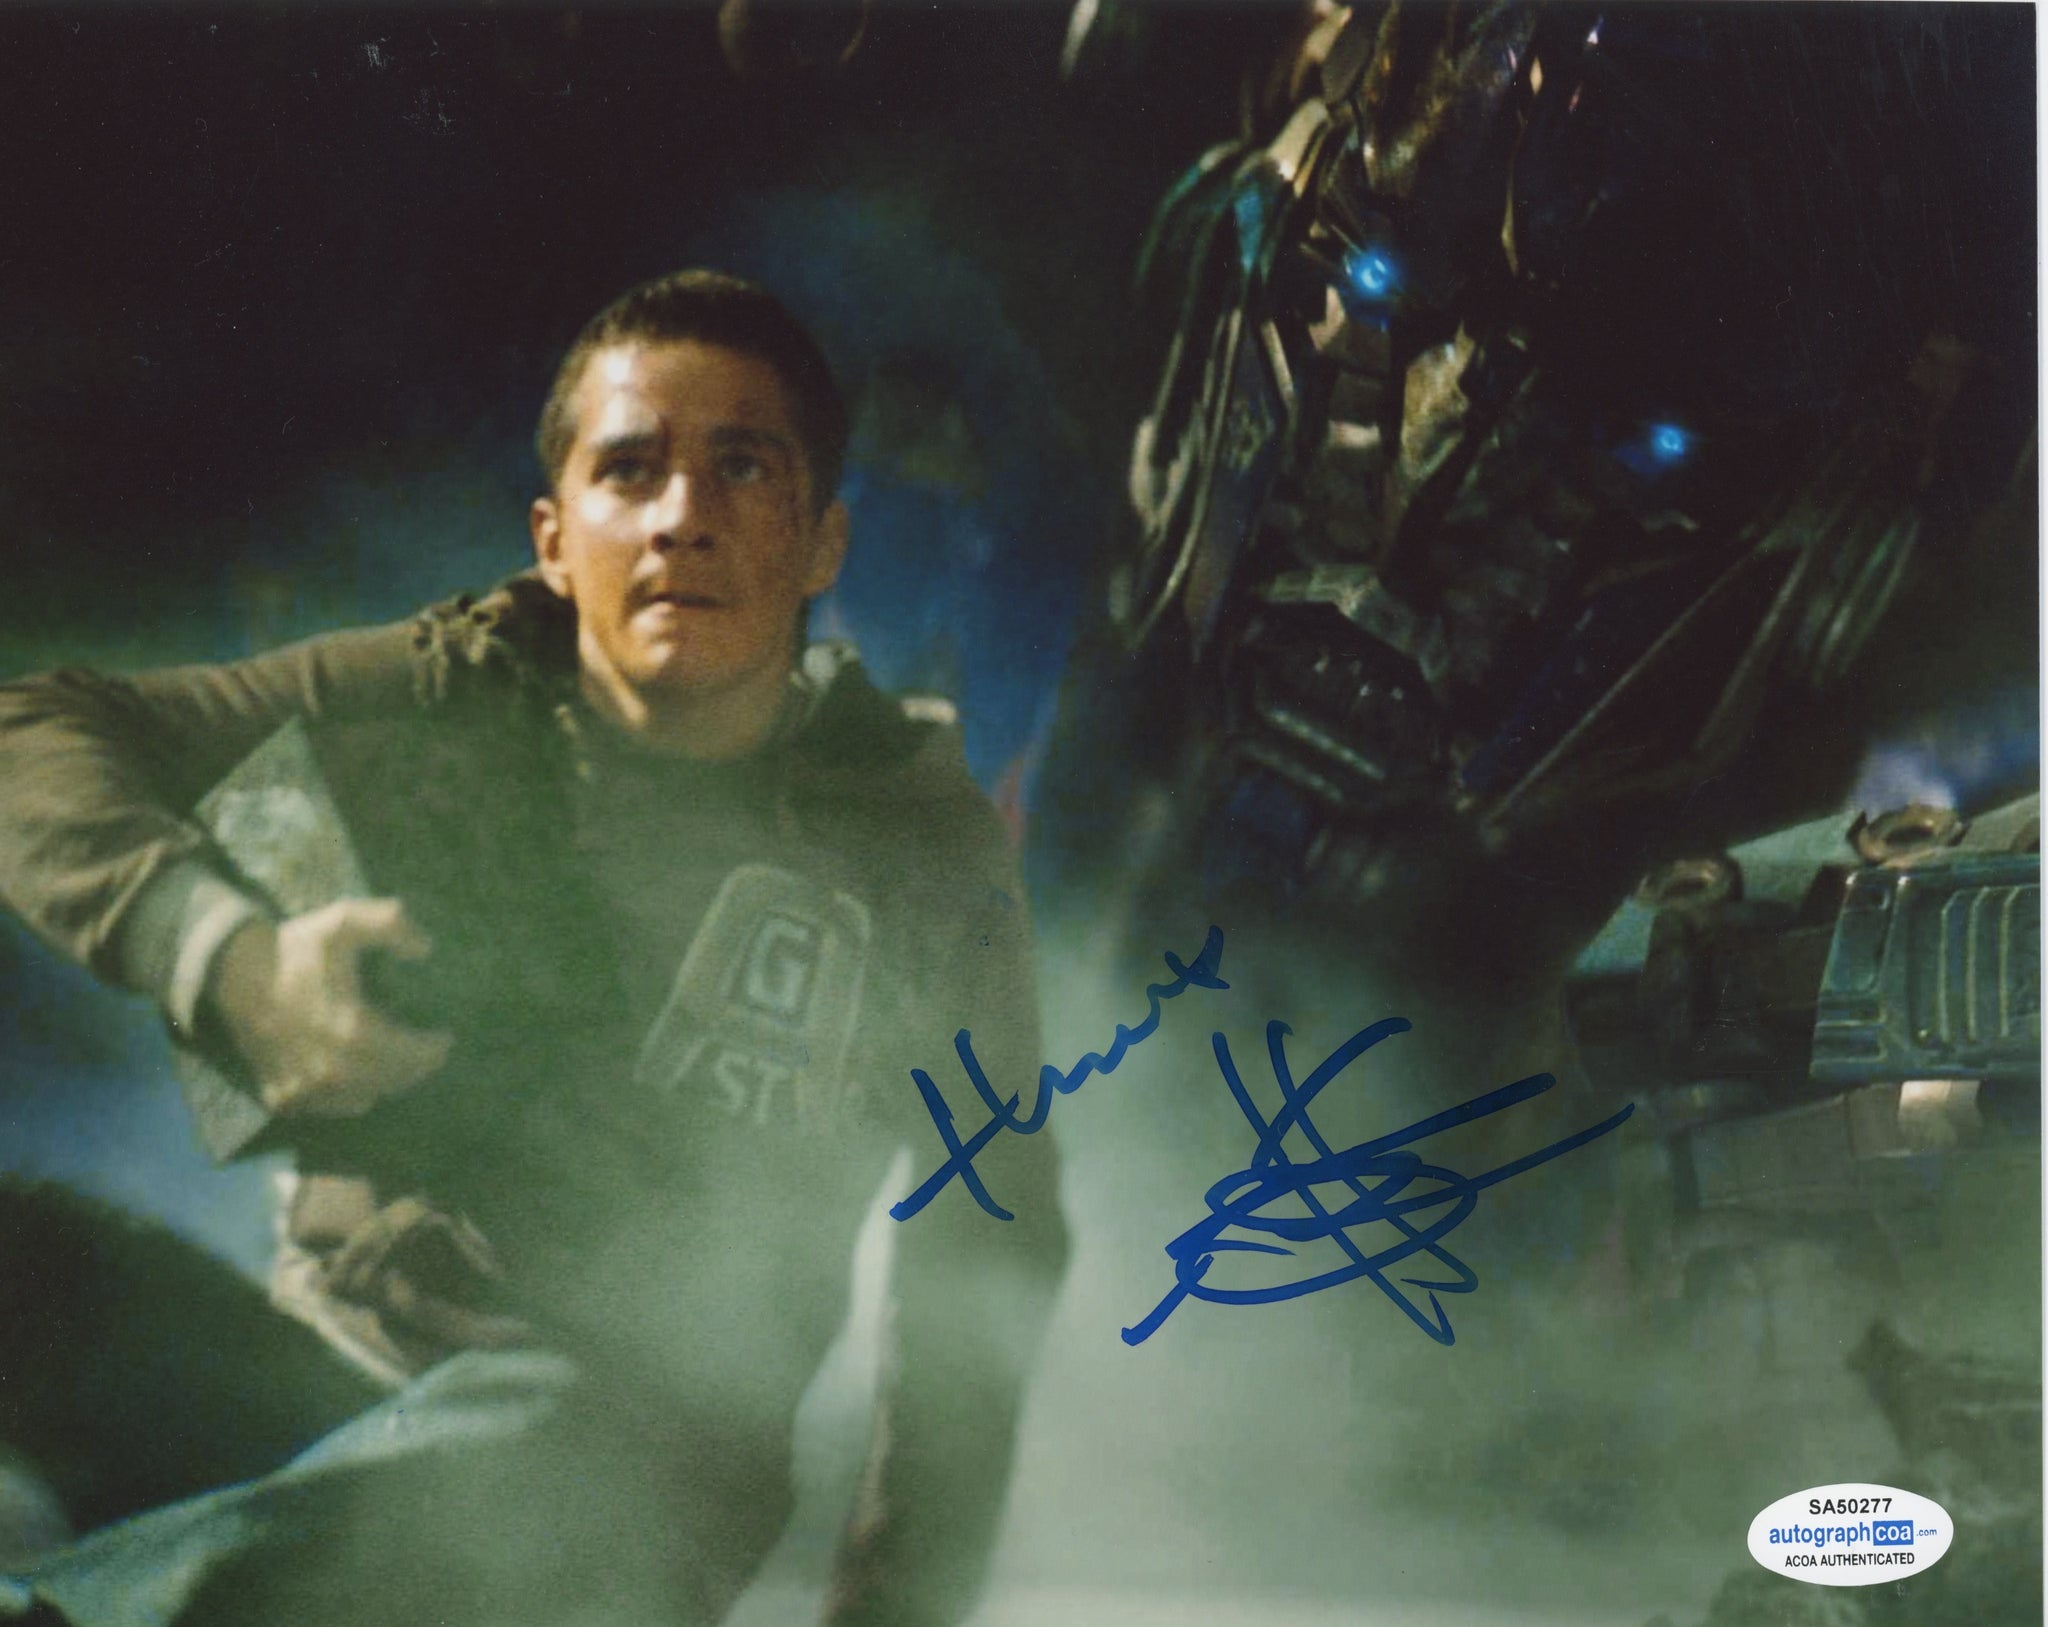 Shia Labeouf Transformers Signed Autograph 8x10 Photo ACOA